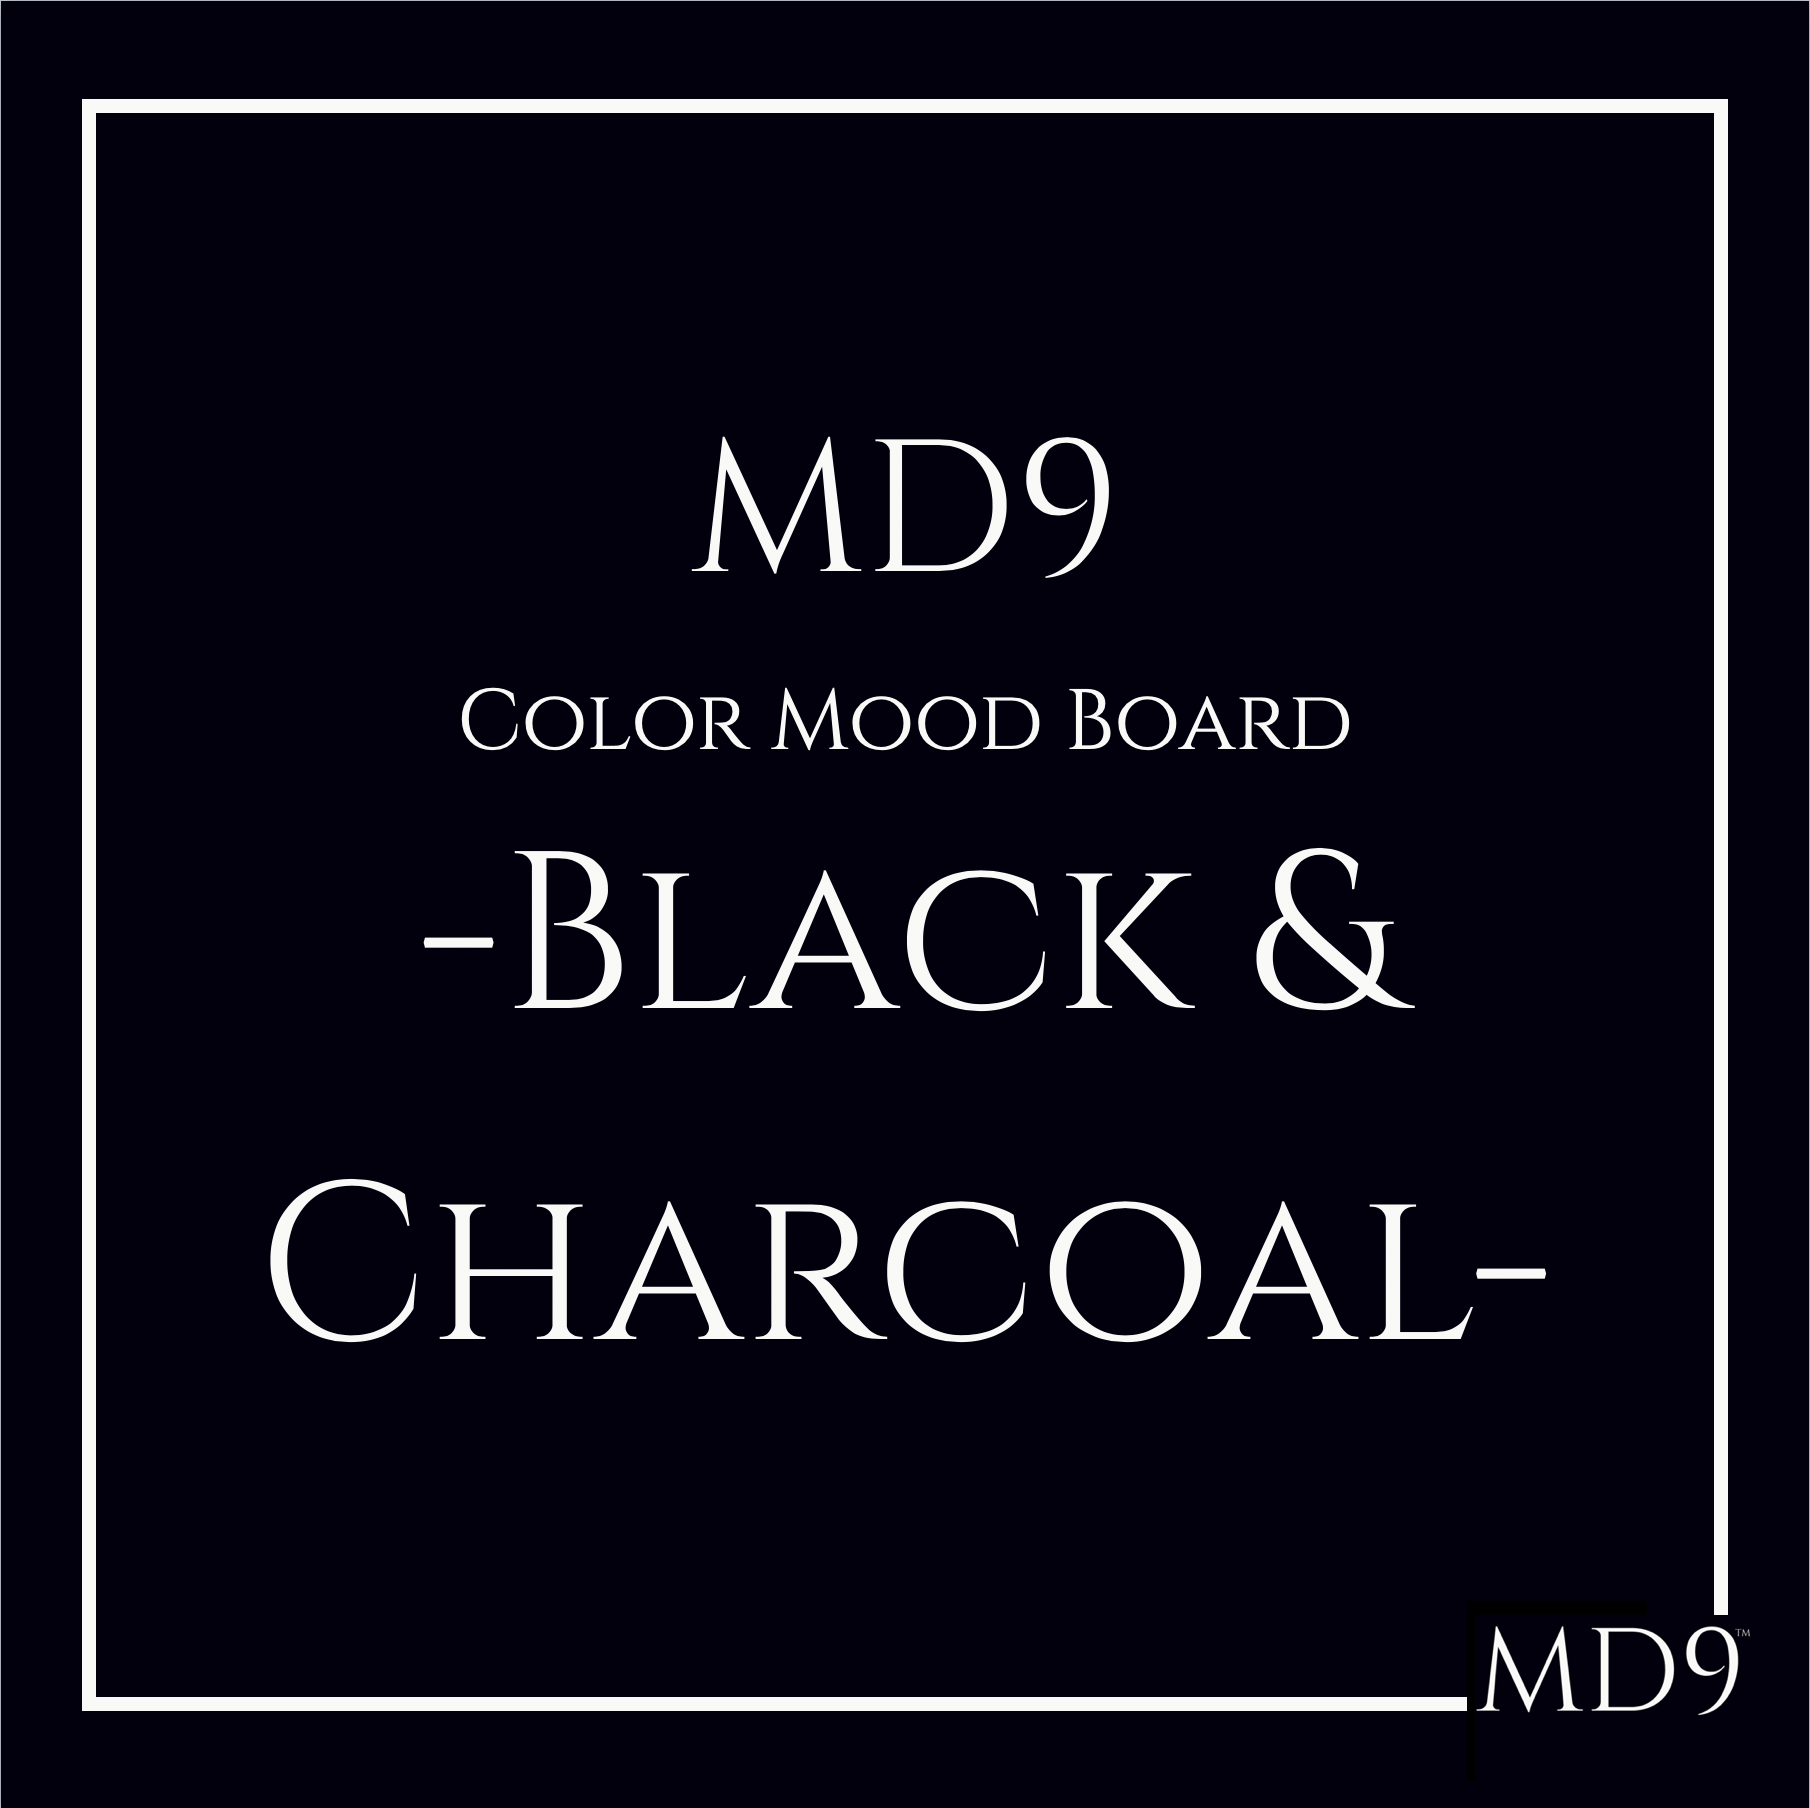 MD9's Colors Mood Board – Black & Charcoal